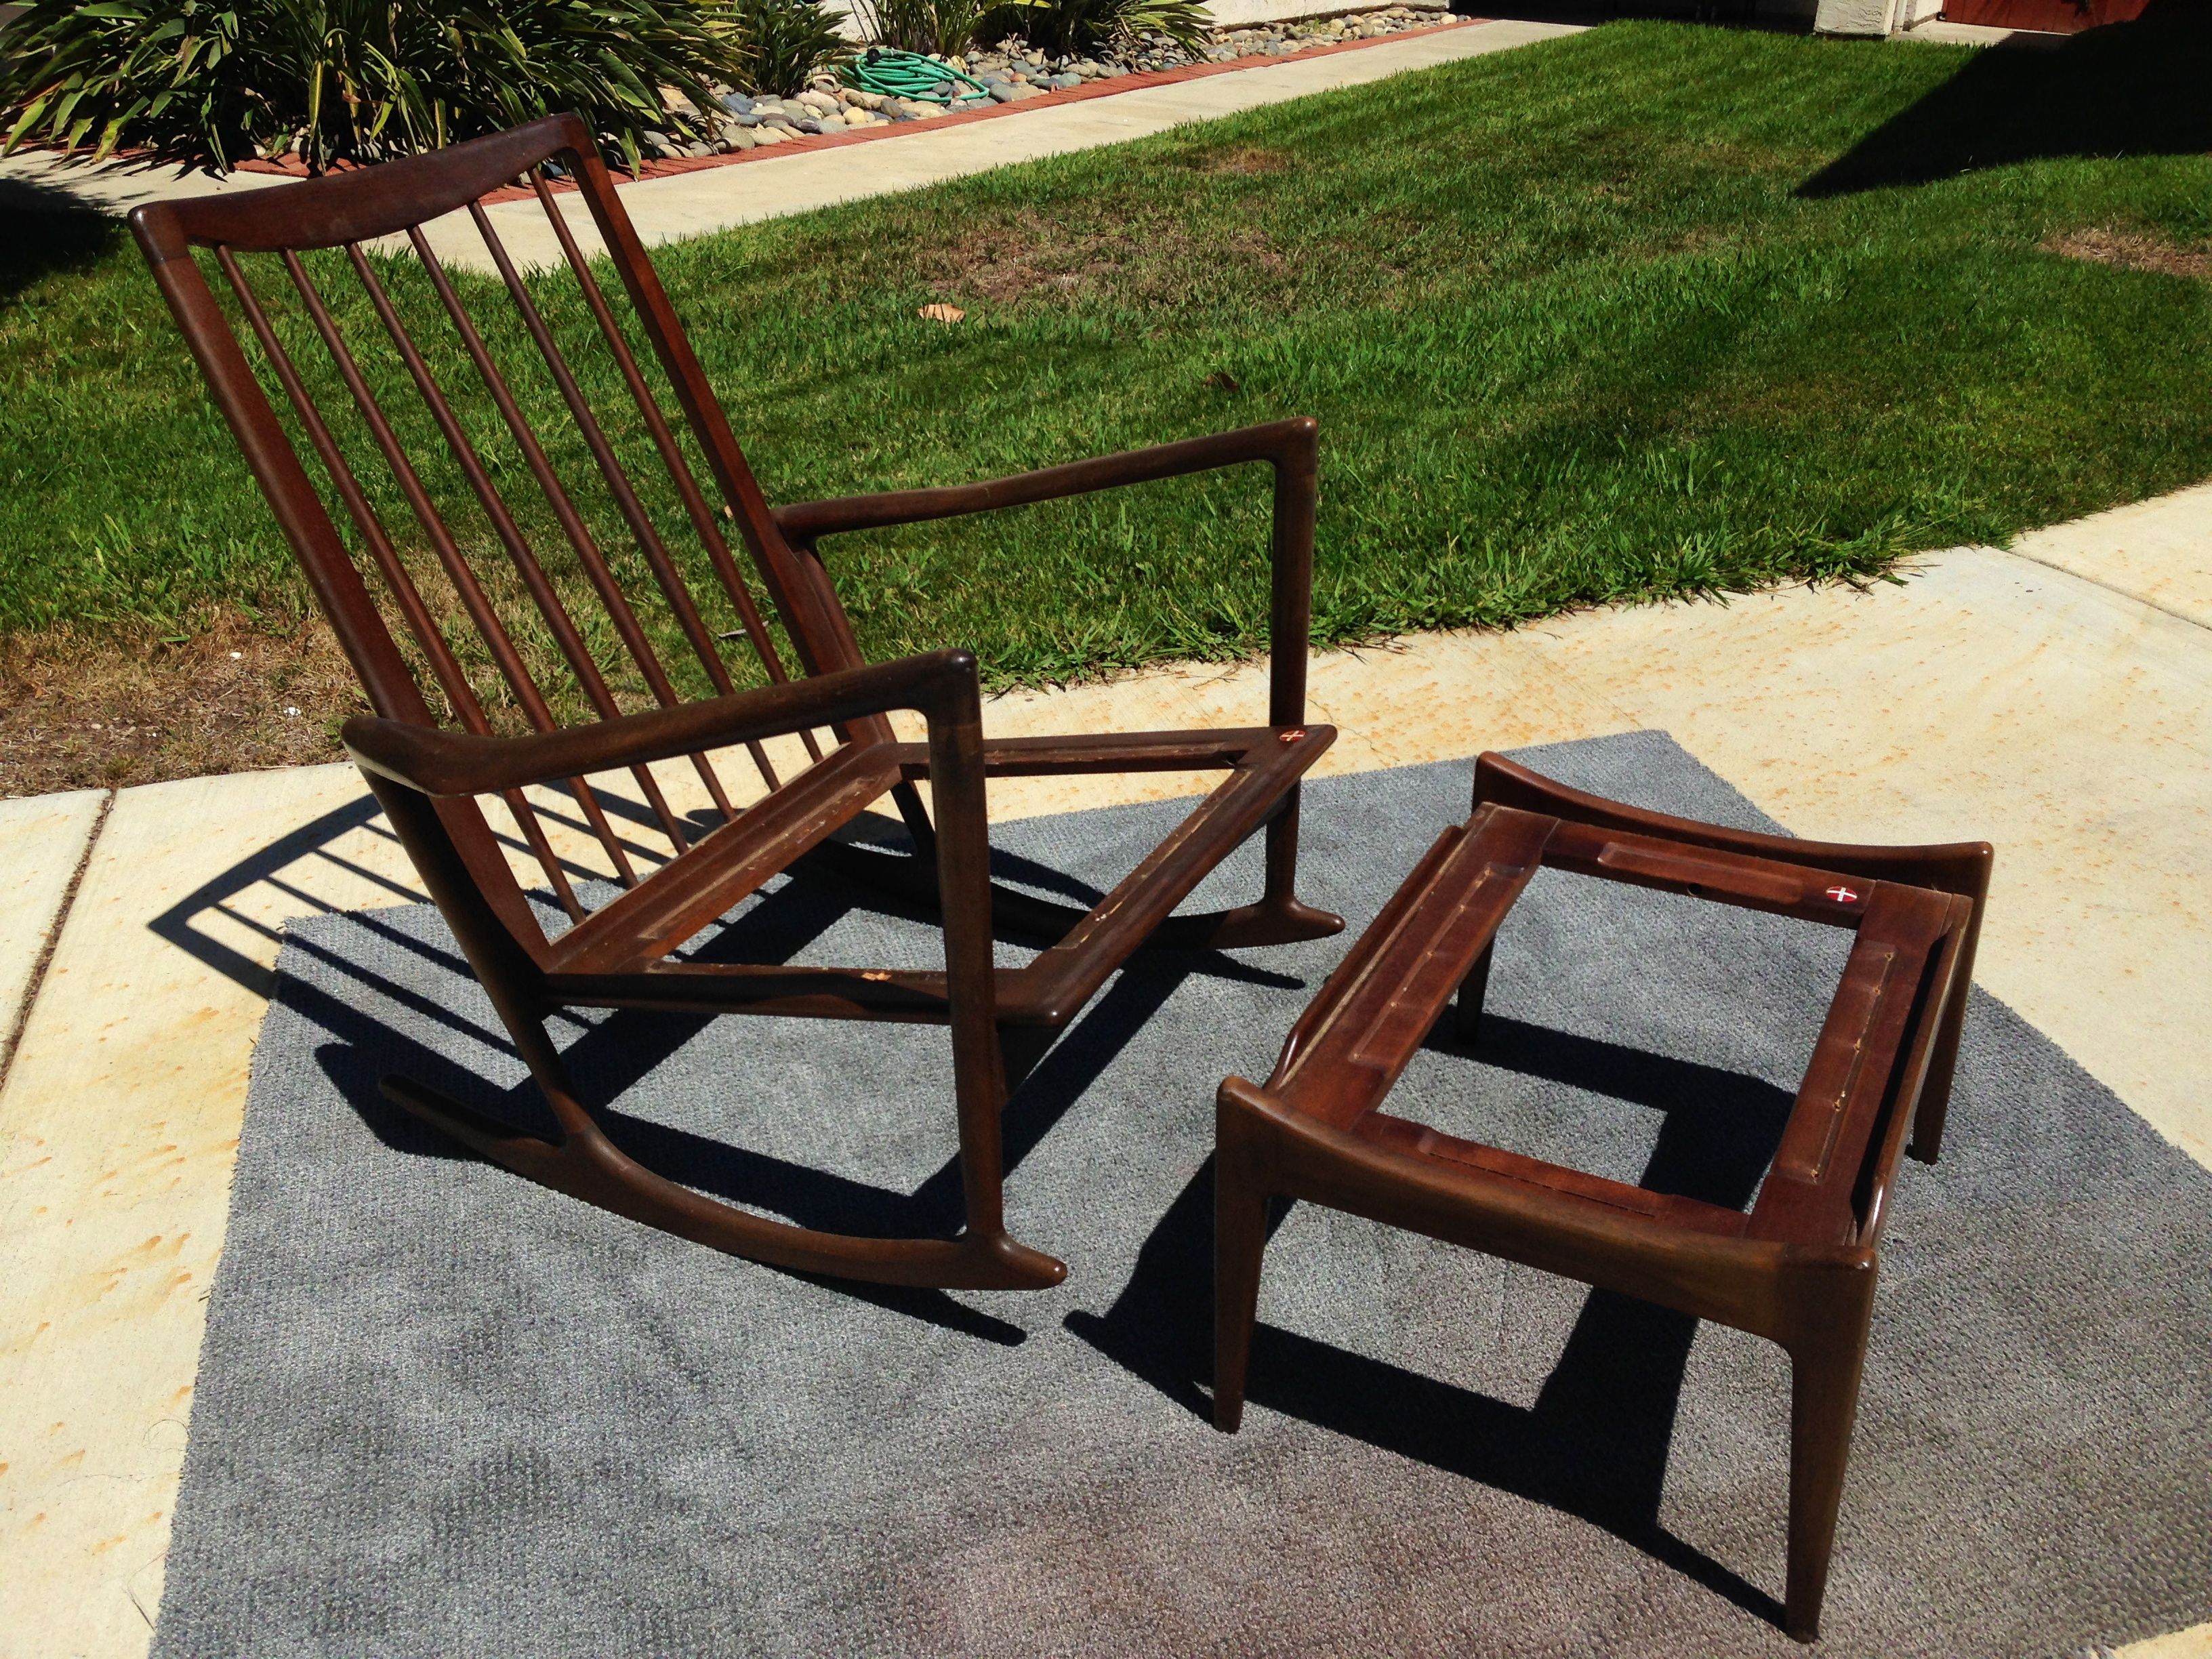 ... Selig Z Chair Plans By Just In Kofod Larsen Rockin Rocker And Ottoman  By Selig Let ...